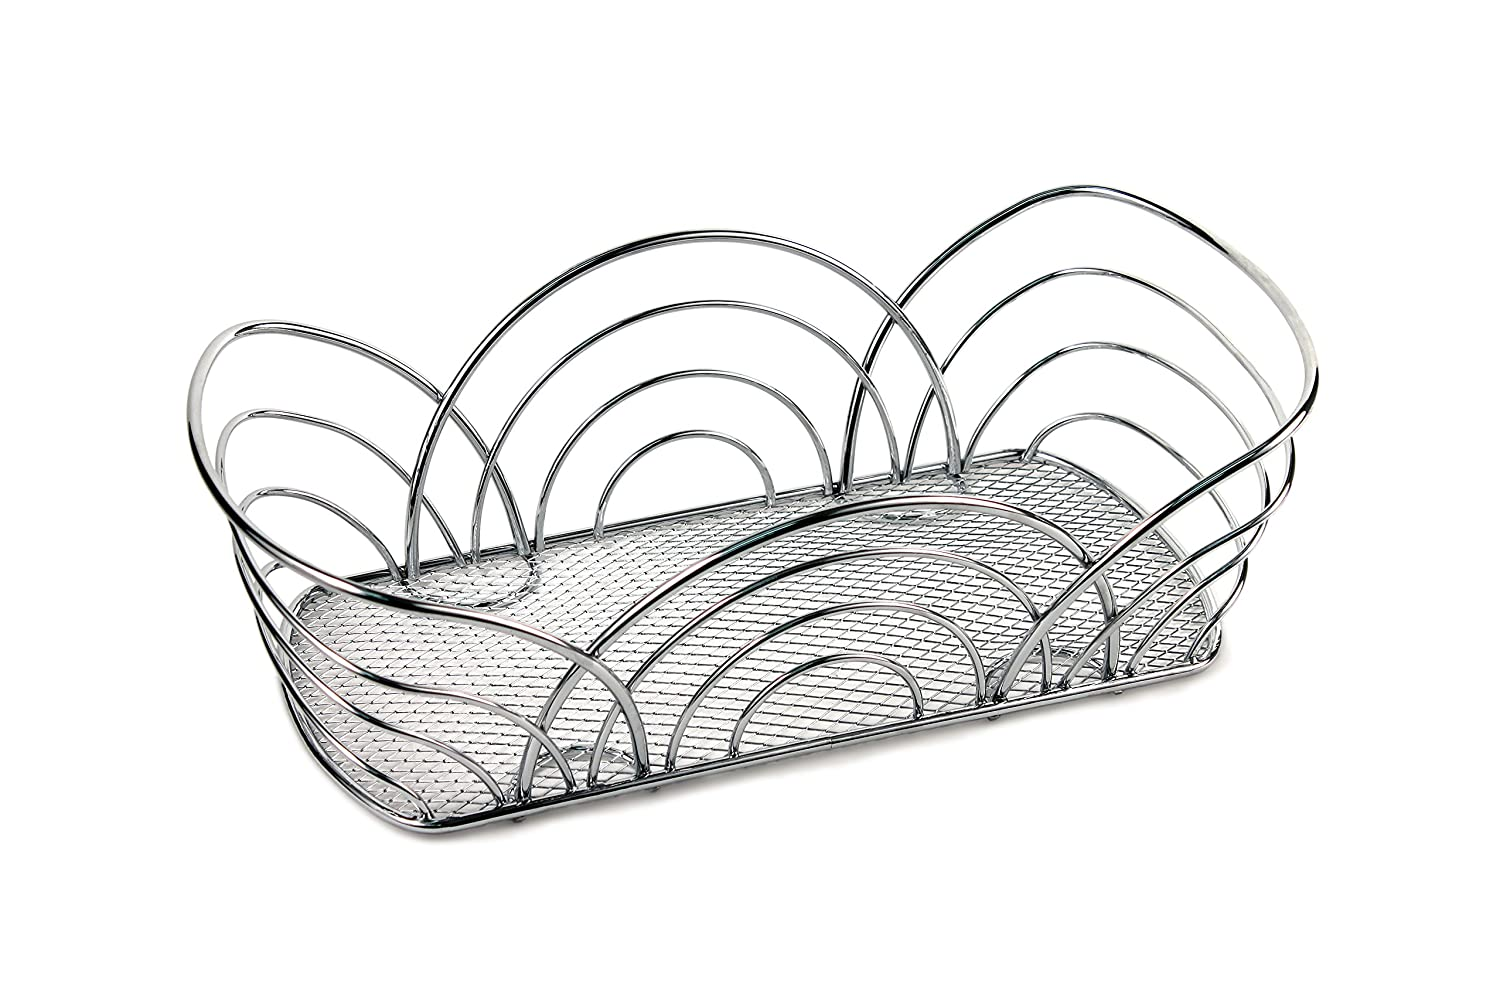 Spectrum Diversified Twist Flower Bread Basket, Black Spectrum Diversified Designs Inc. 96810